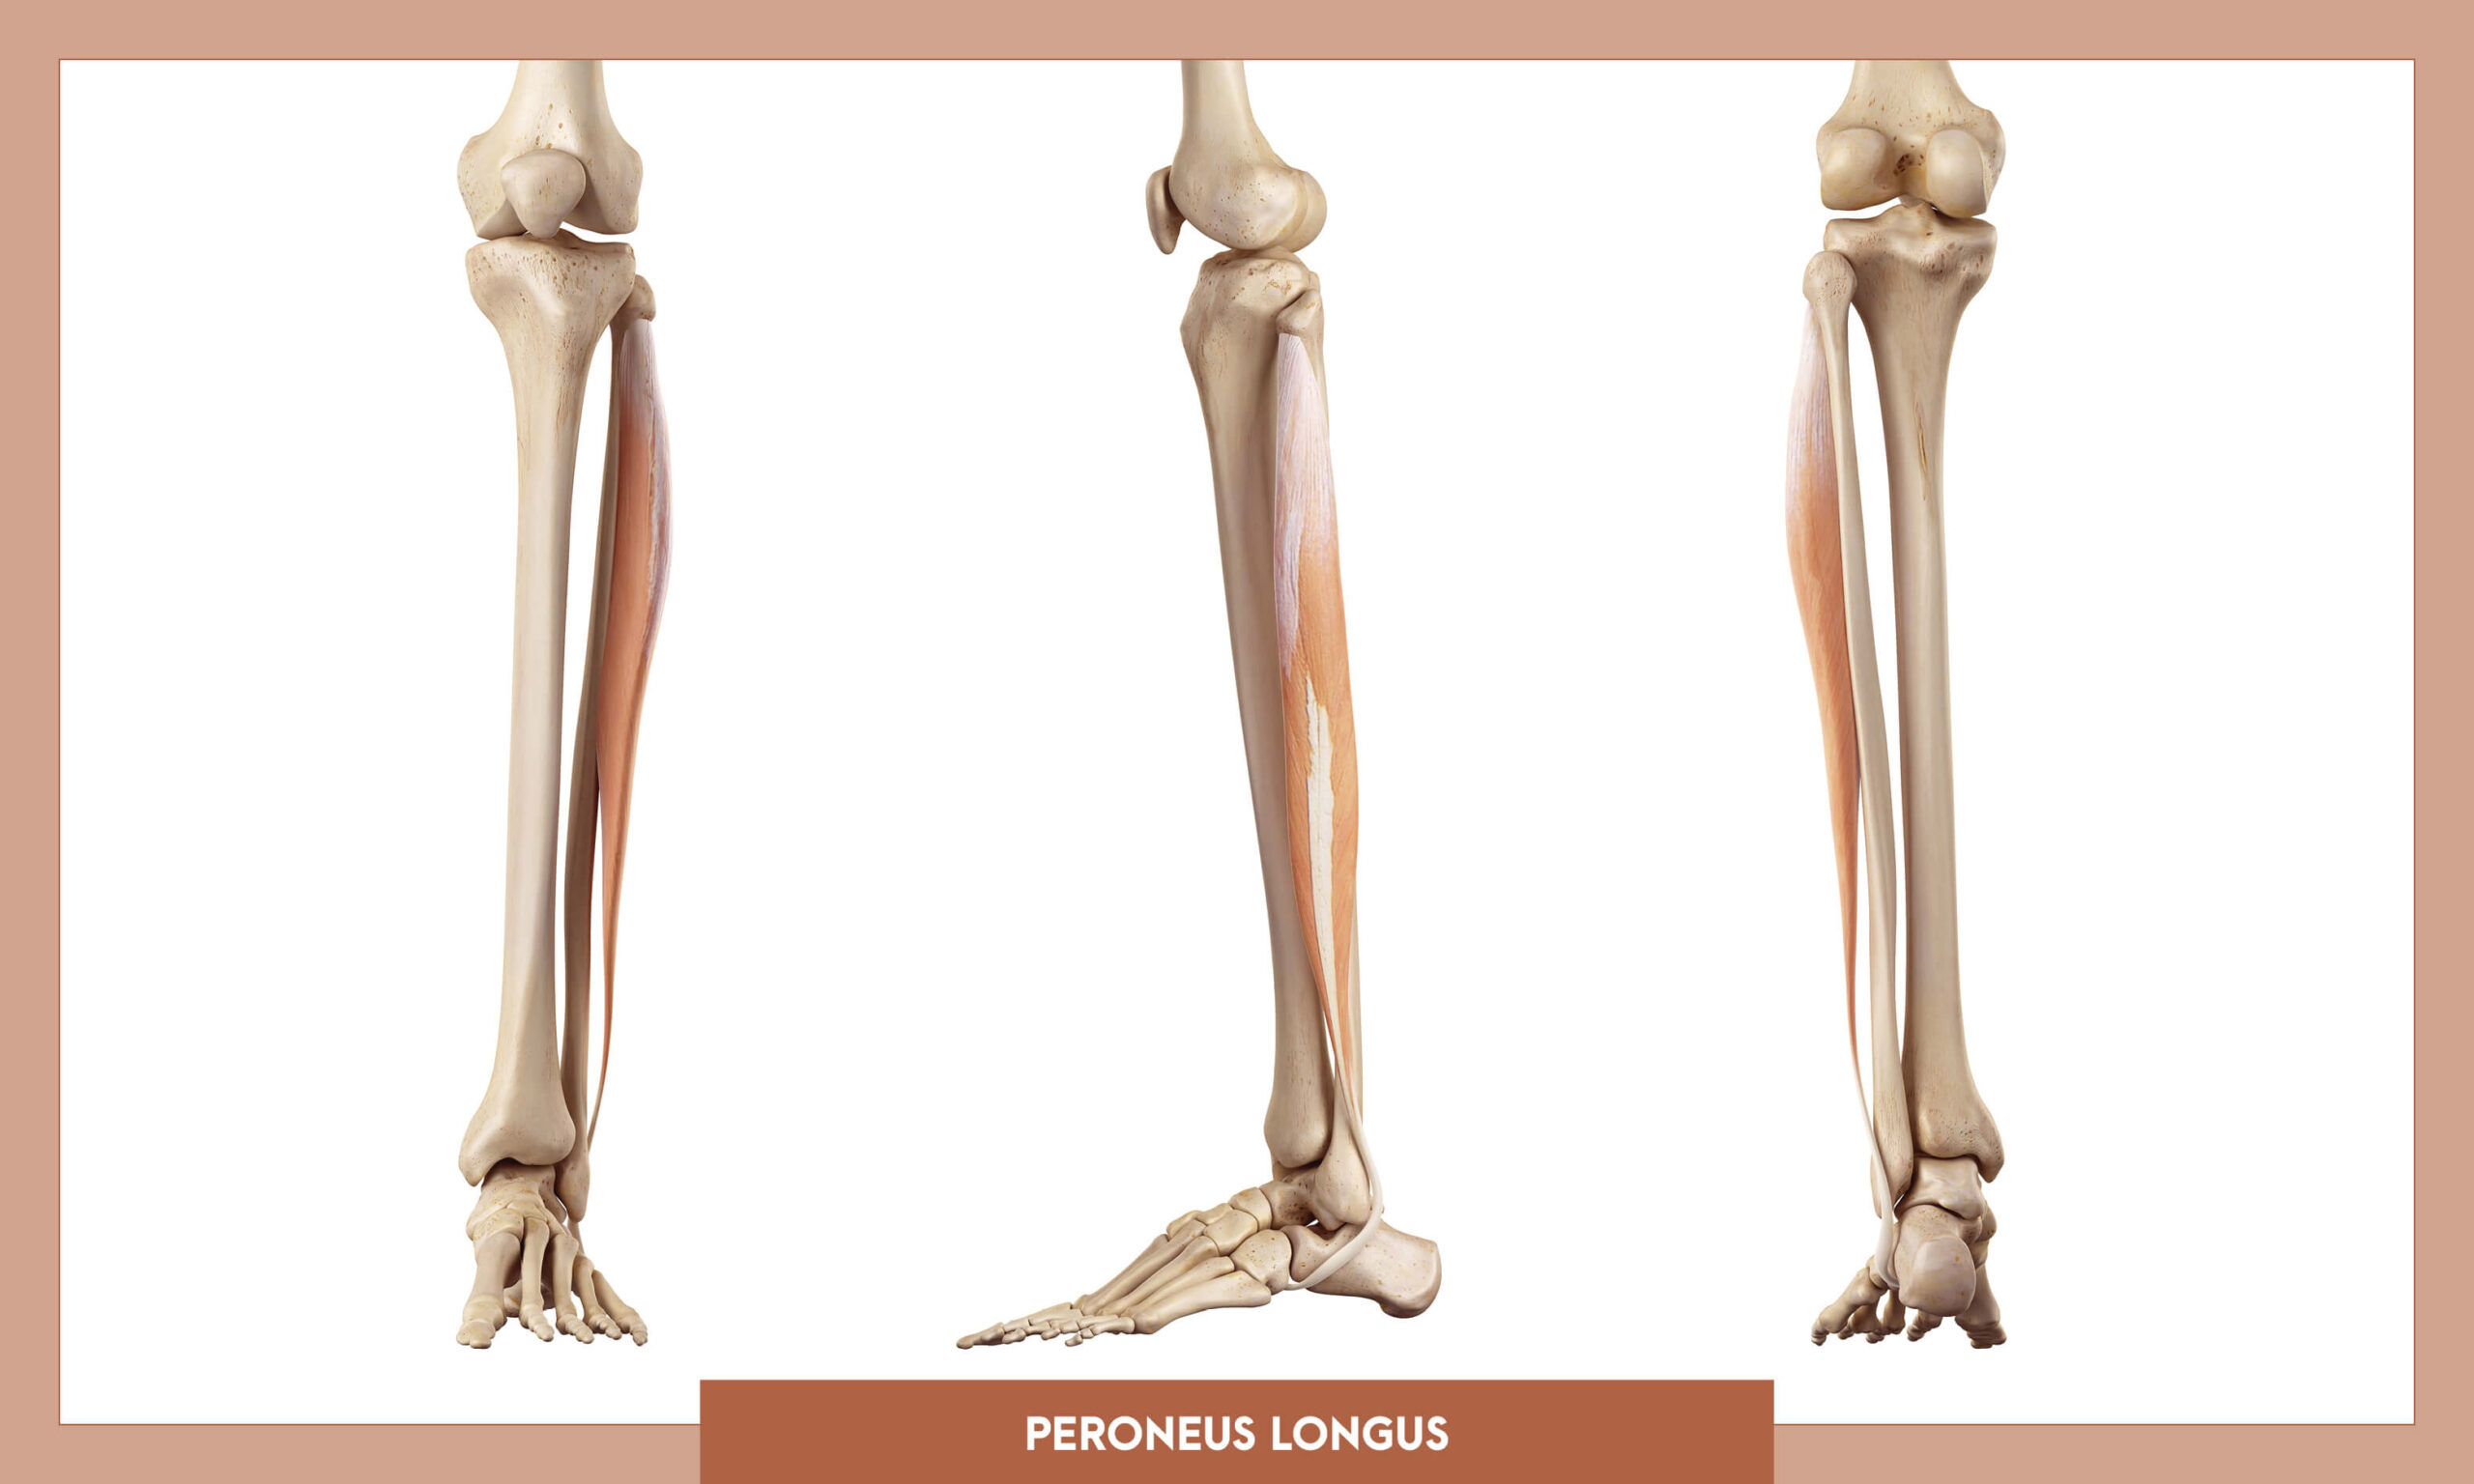 Muscles of thee Lower Limb - Peroneus longus